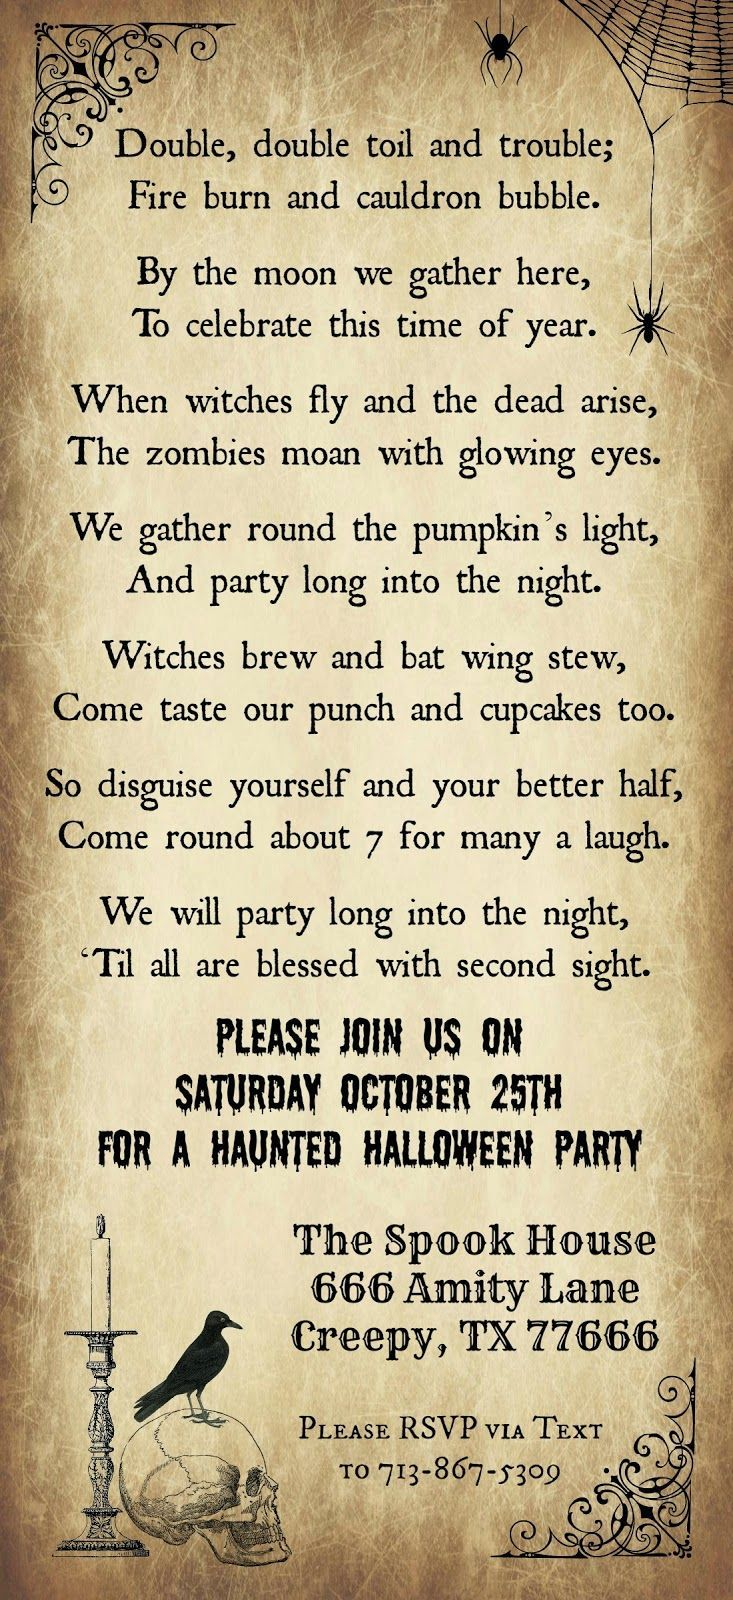 Print Your Halloween Party Invitations With Our Free Template